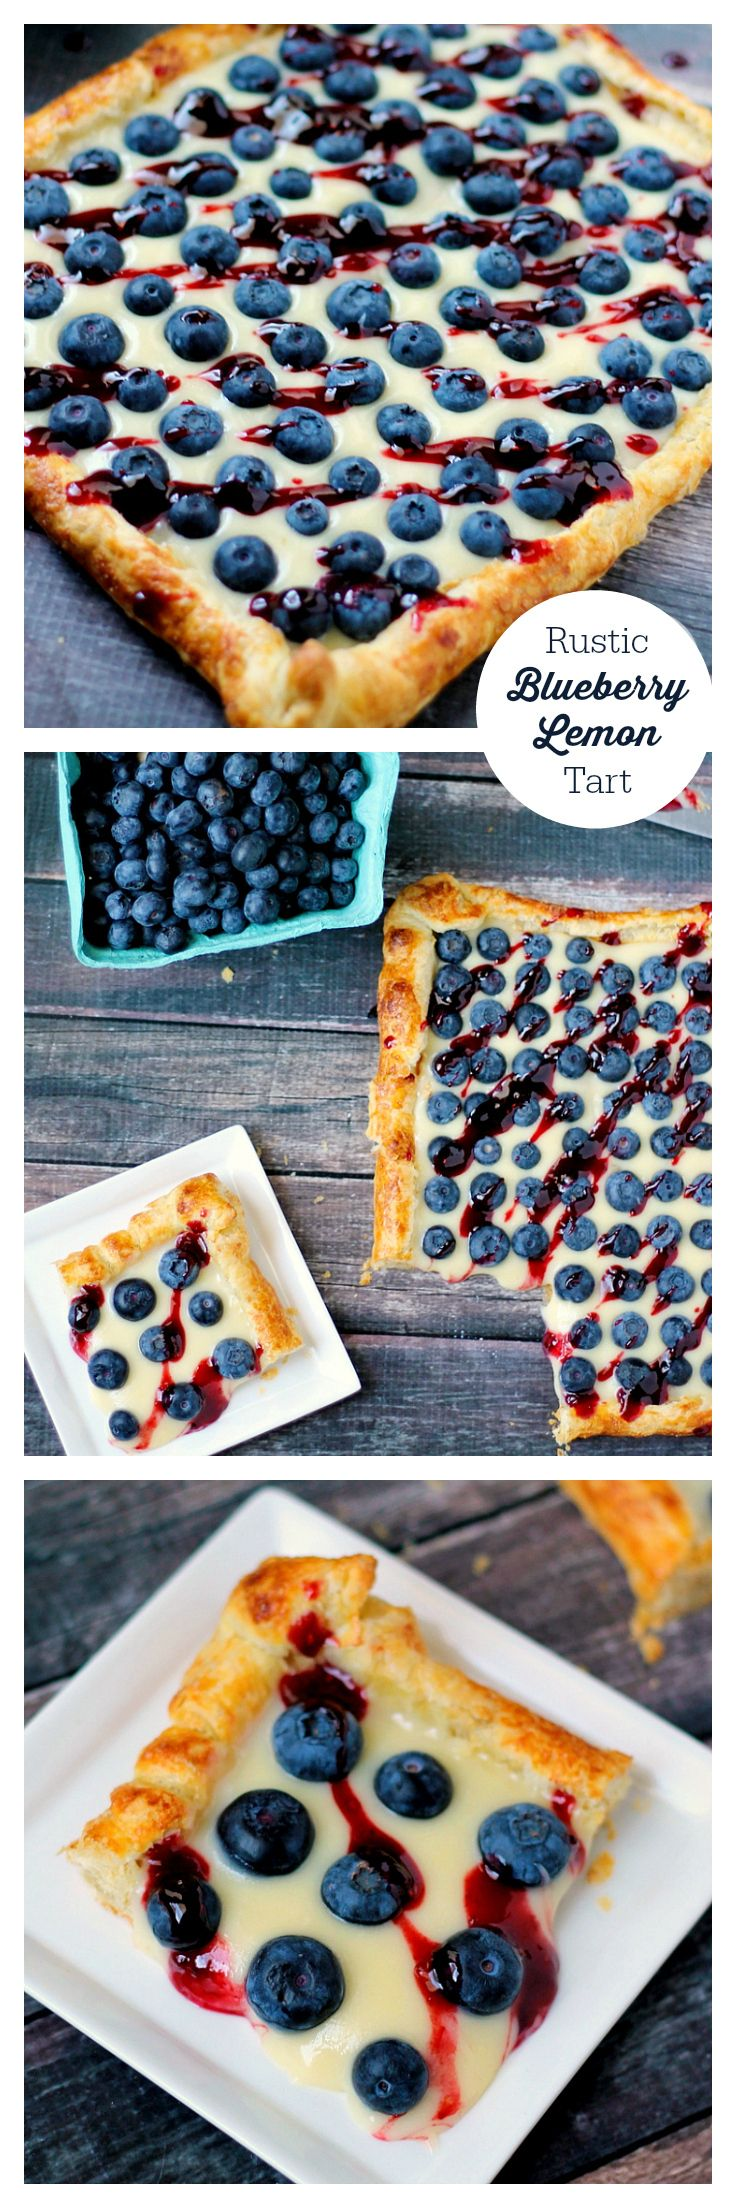 Rustic Blueberry Lemon Tart | Recipe | Lemon Filling, Lemon Tarts and ...